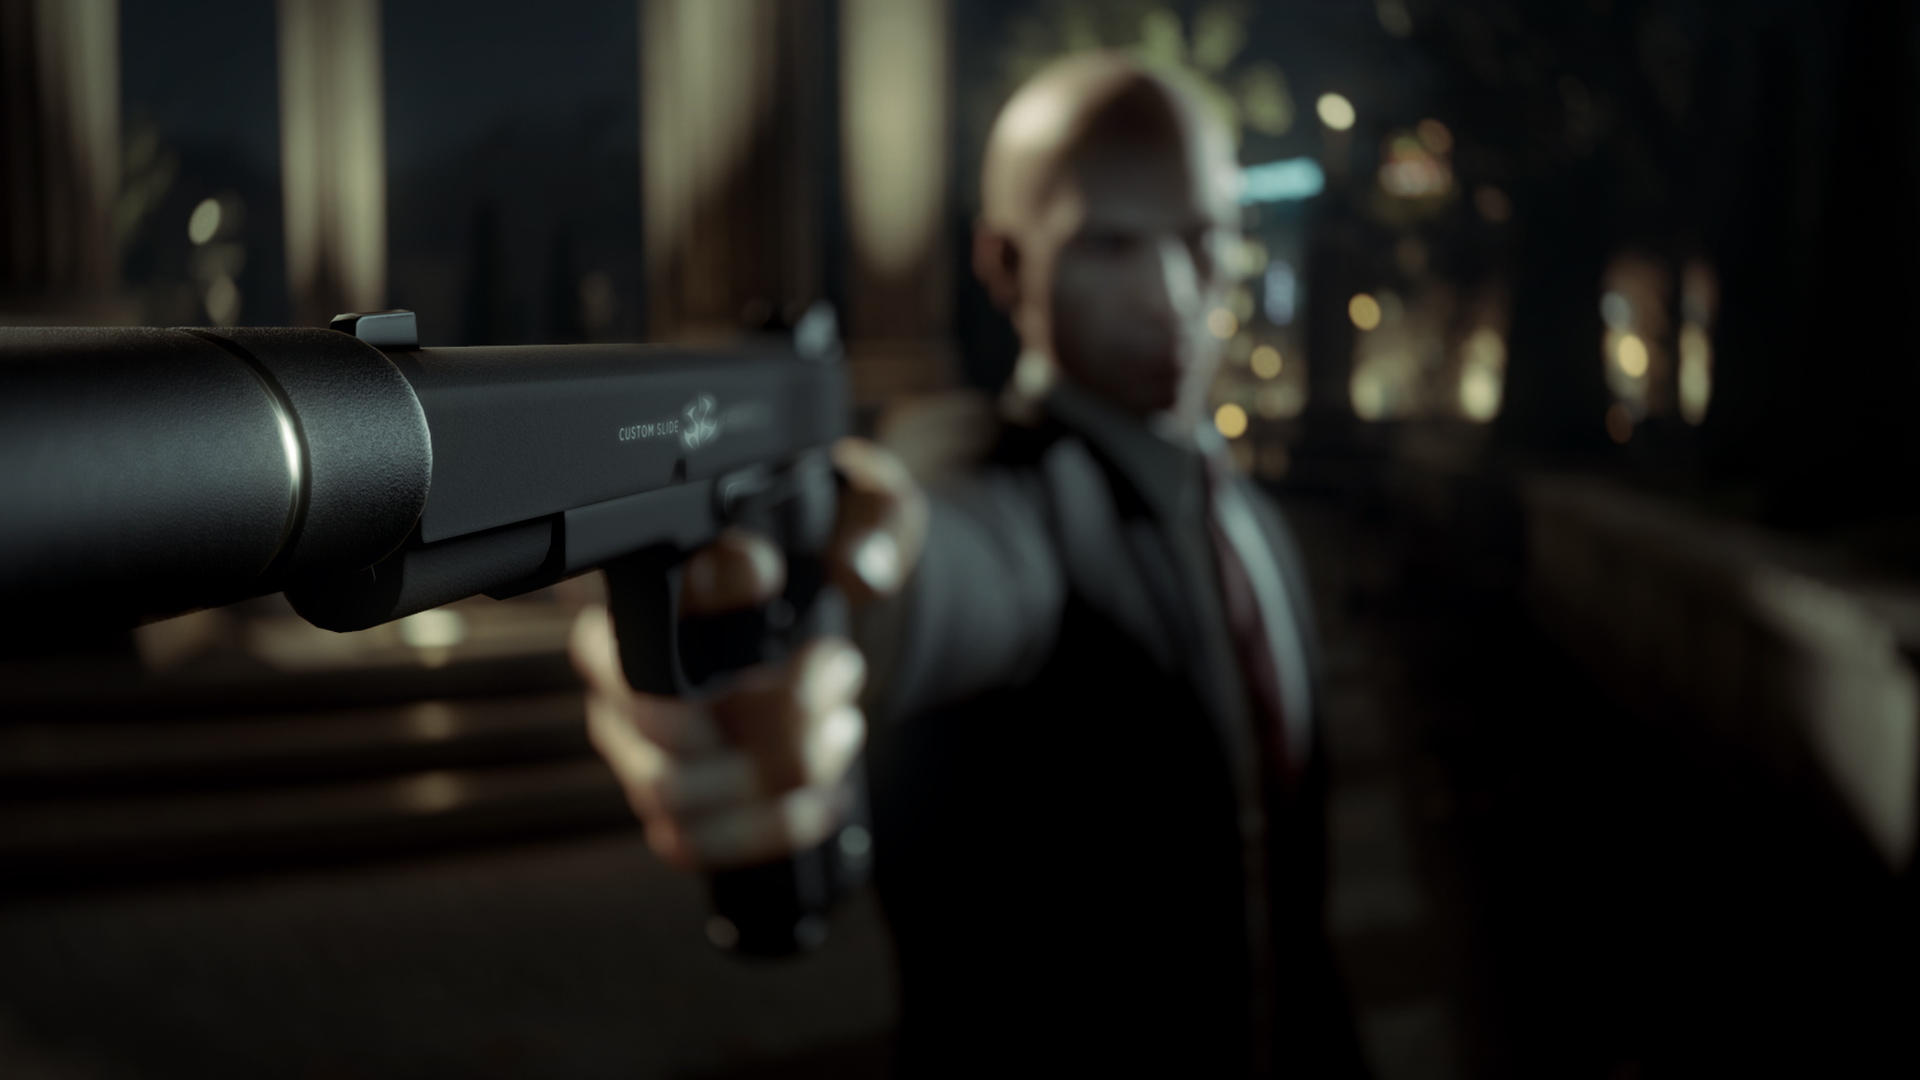 E3 2015: Gameplay Debut Of The New Hitman Game